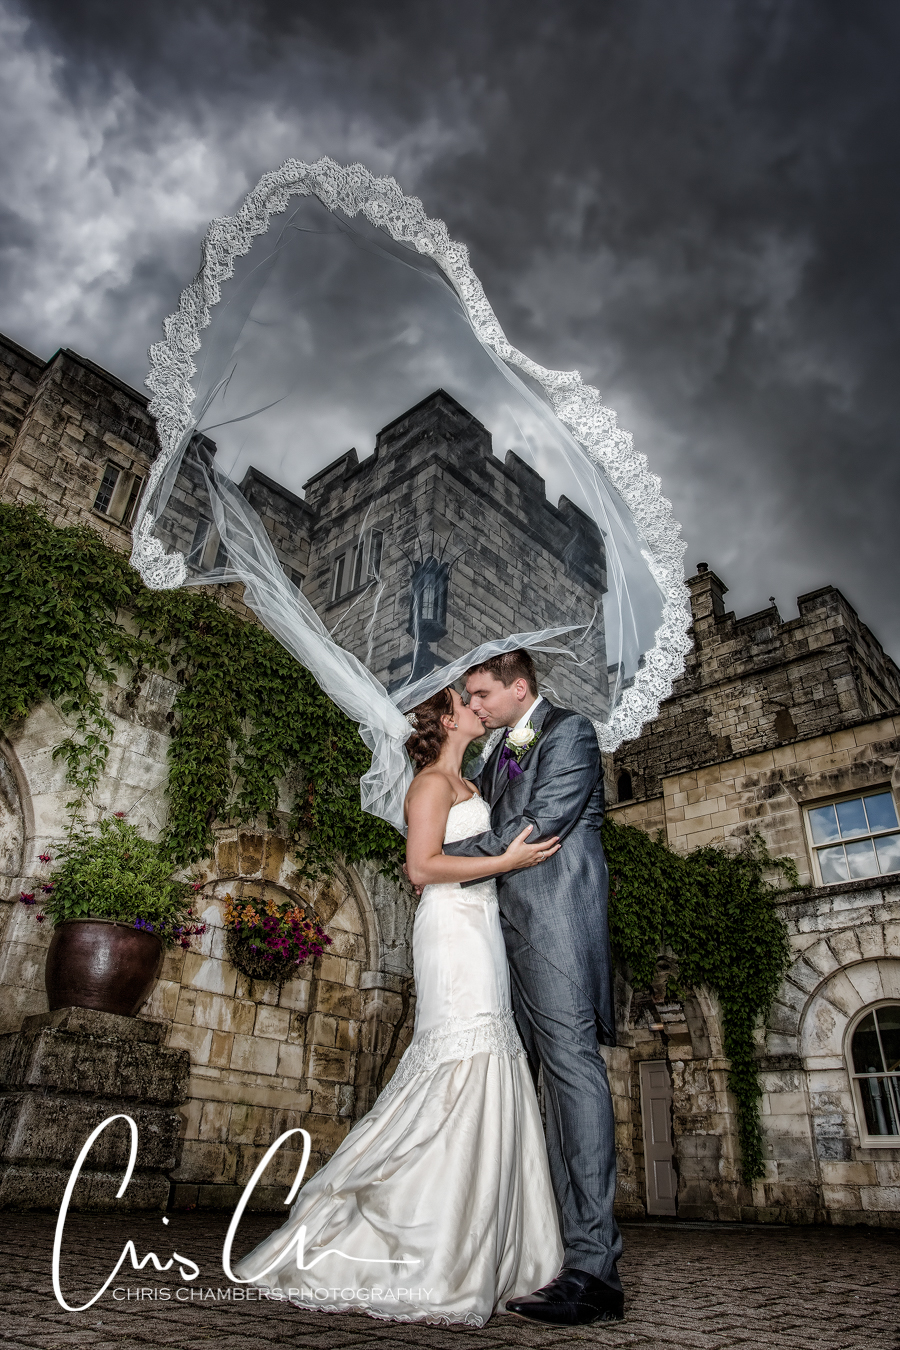 Hazlewood Castle Wedding Photographs, Tadcaster wedding photography, Hazlewood Castle Wedding Photographs in North Yorkshire, Award winning Yorkshire wedding photographer, Chris Chambers photography,